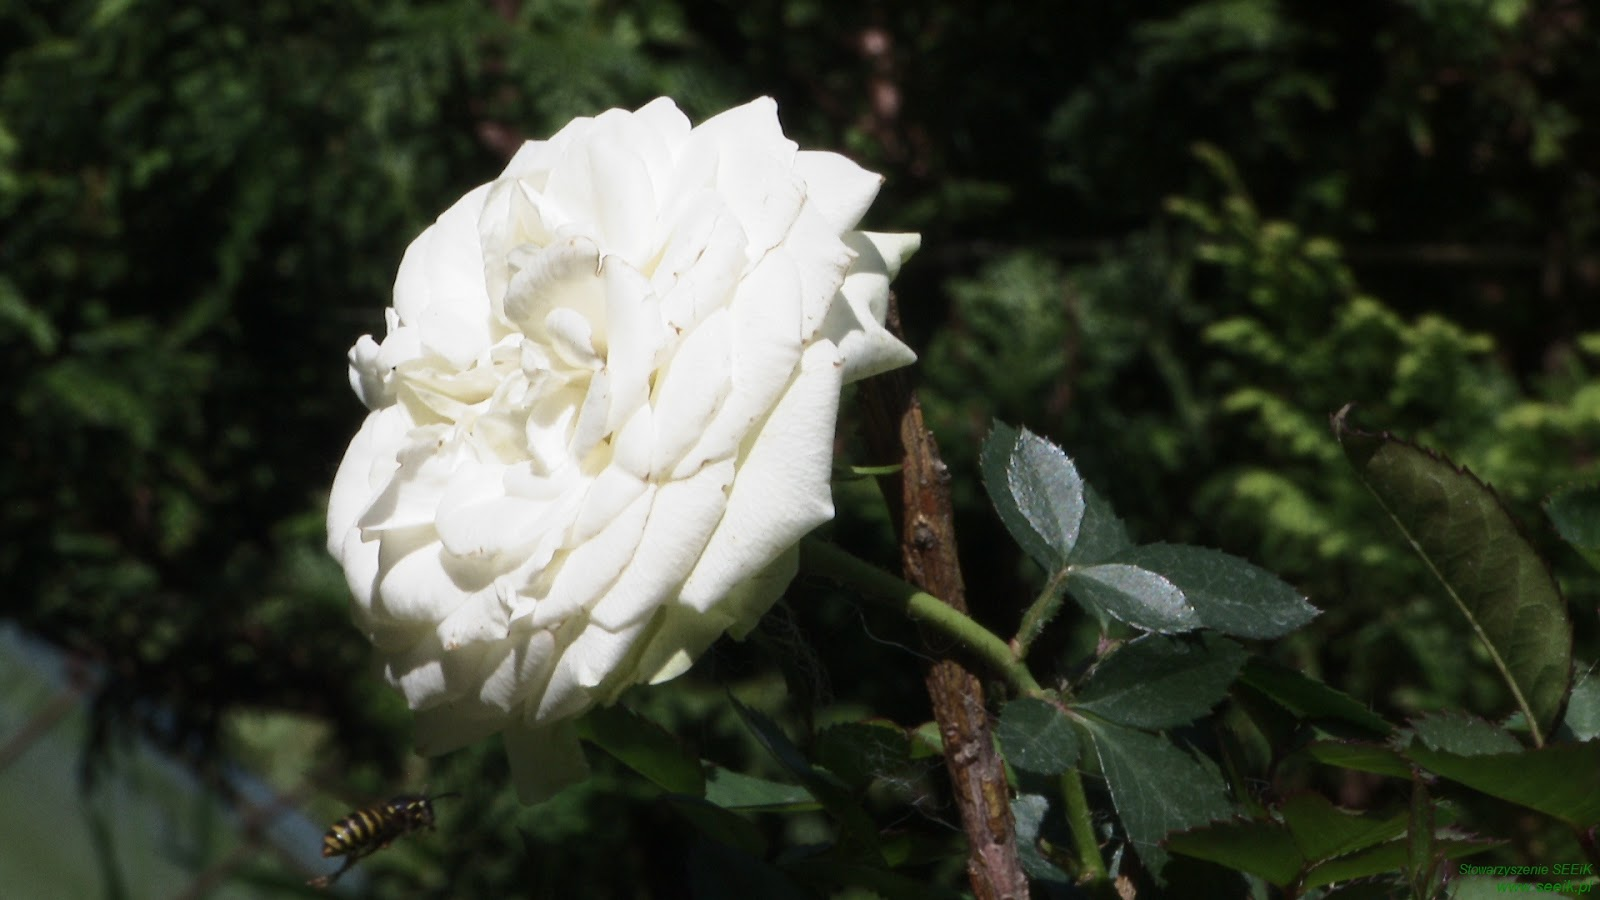 Rose - The Queen of flowers